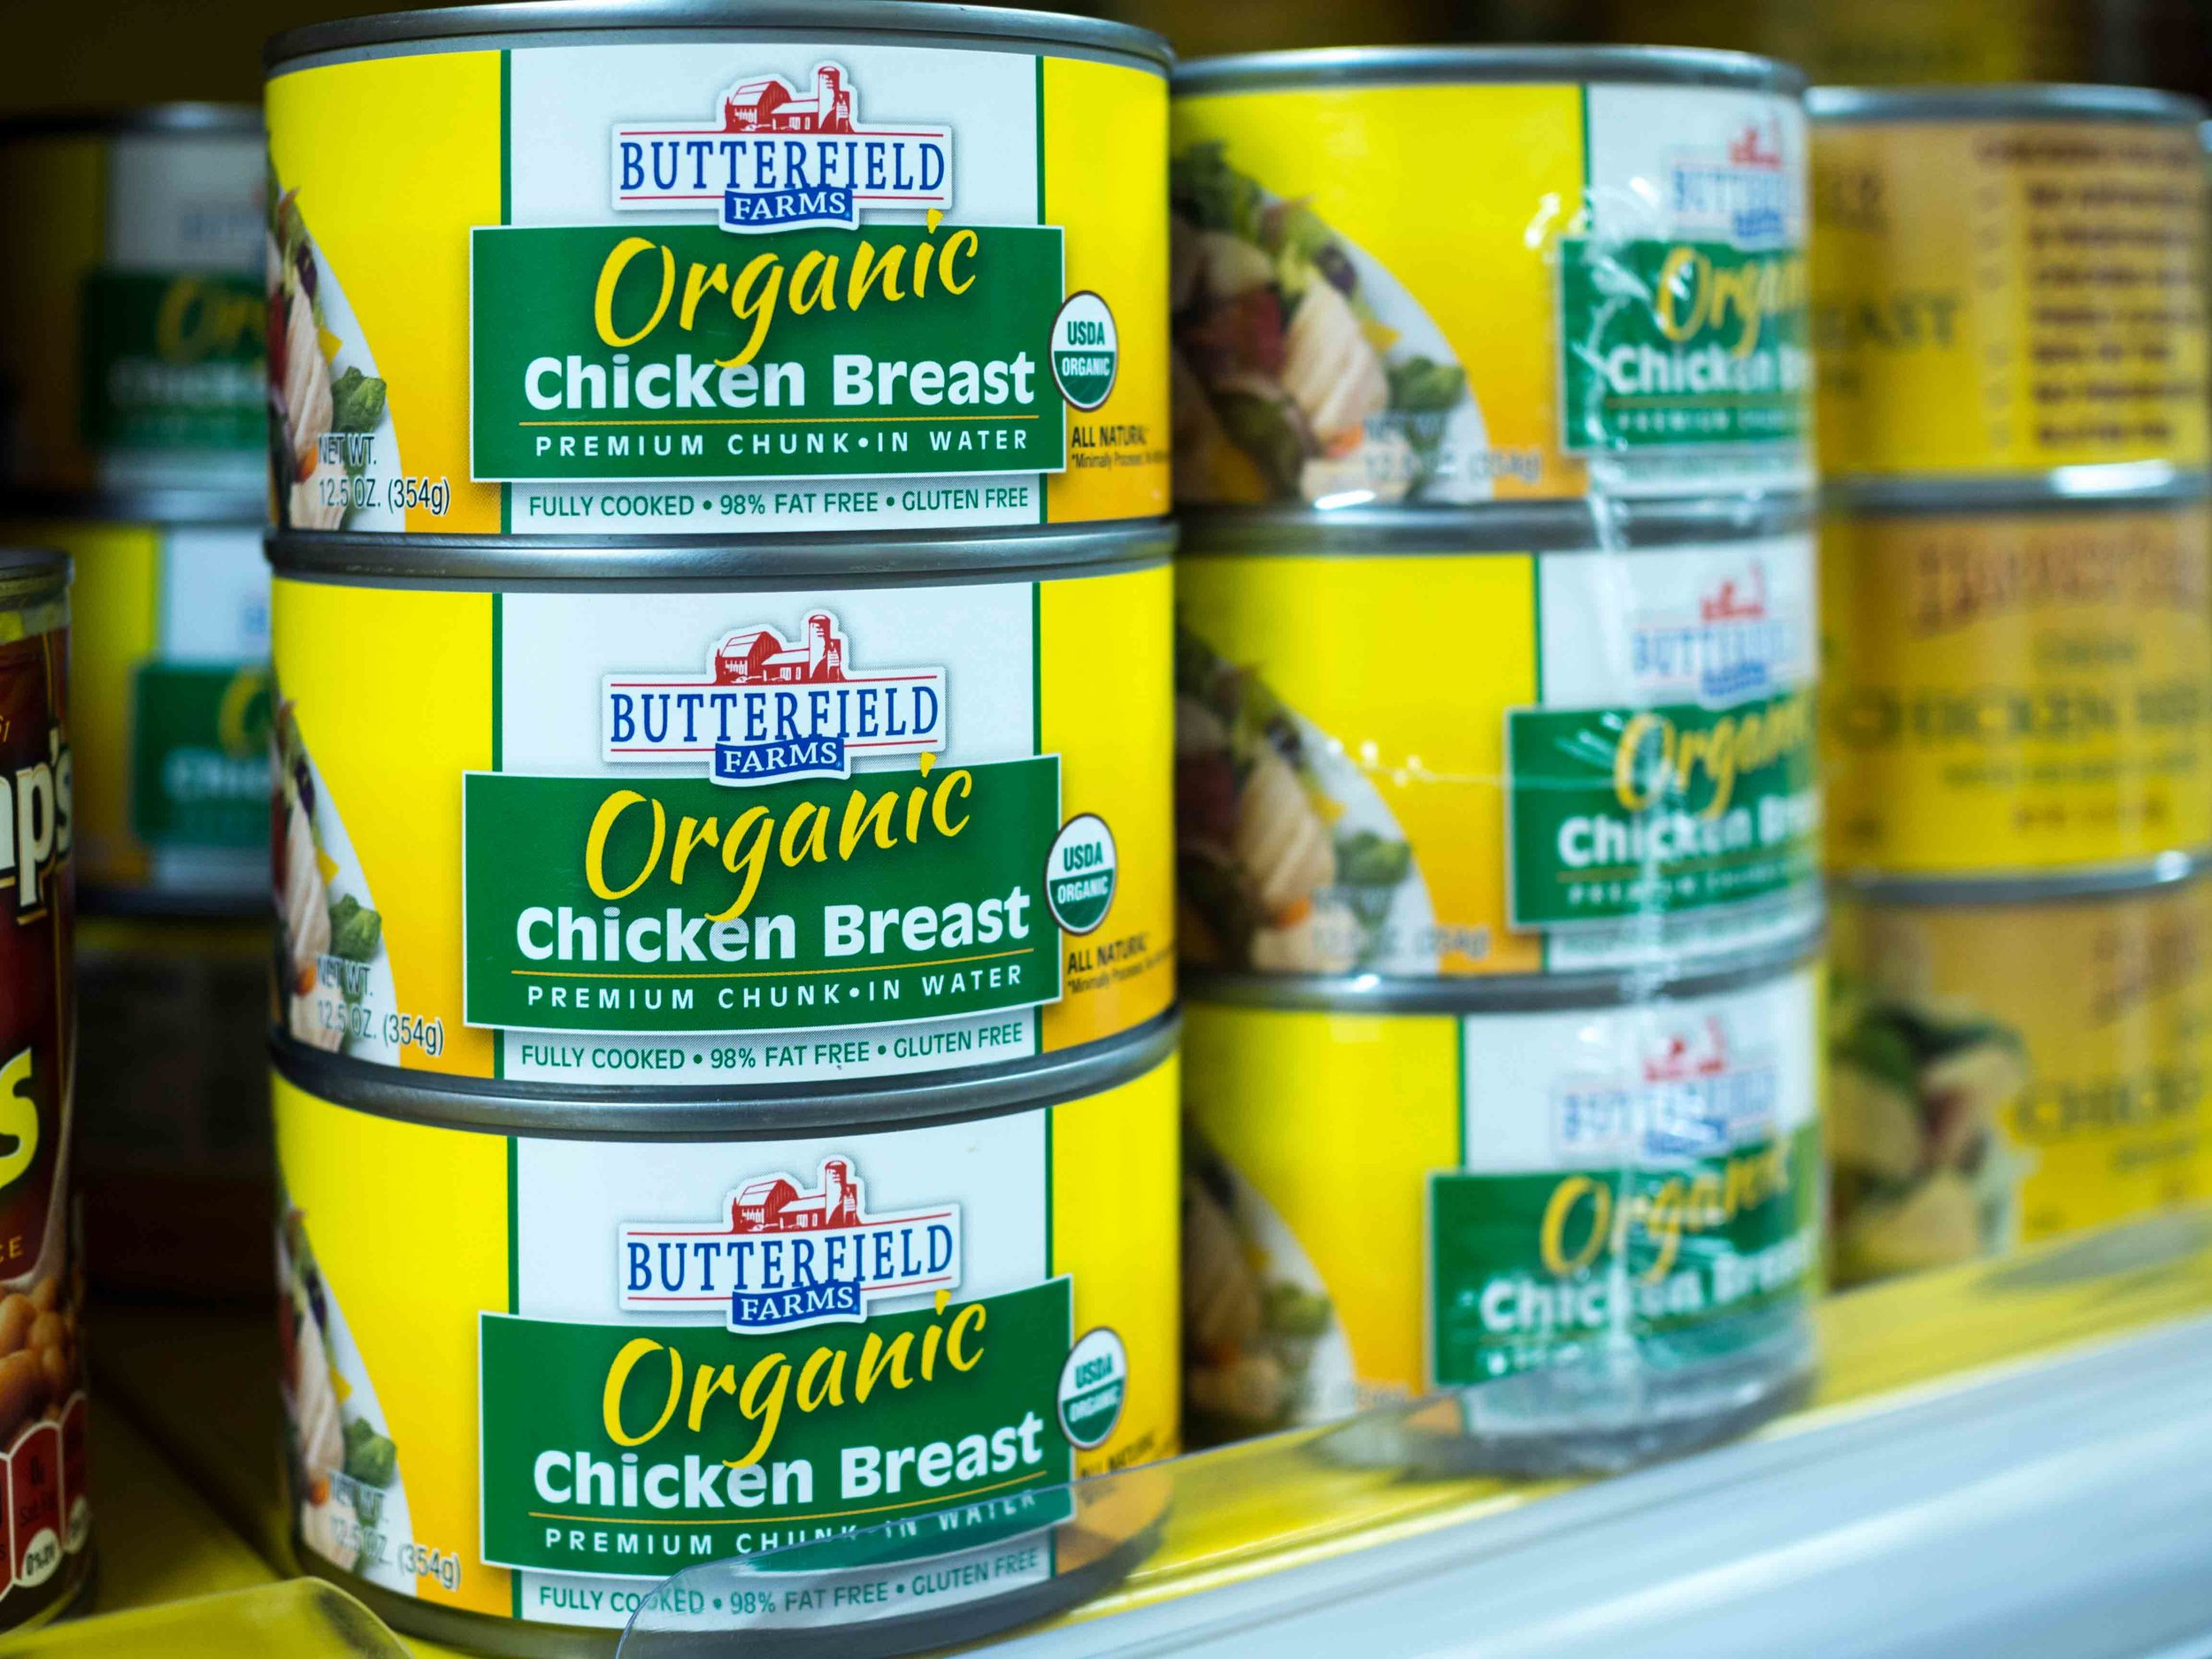 Butterfield Organic Chicken Breast